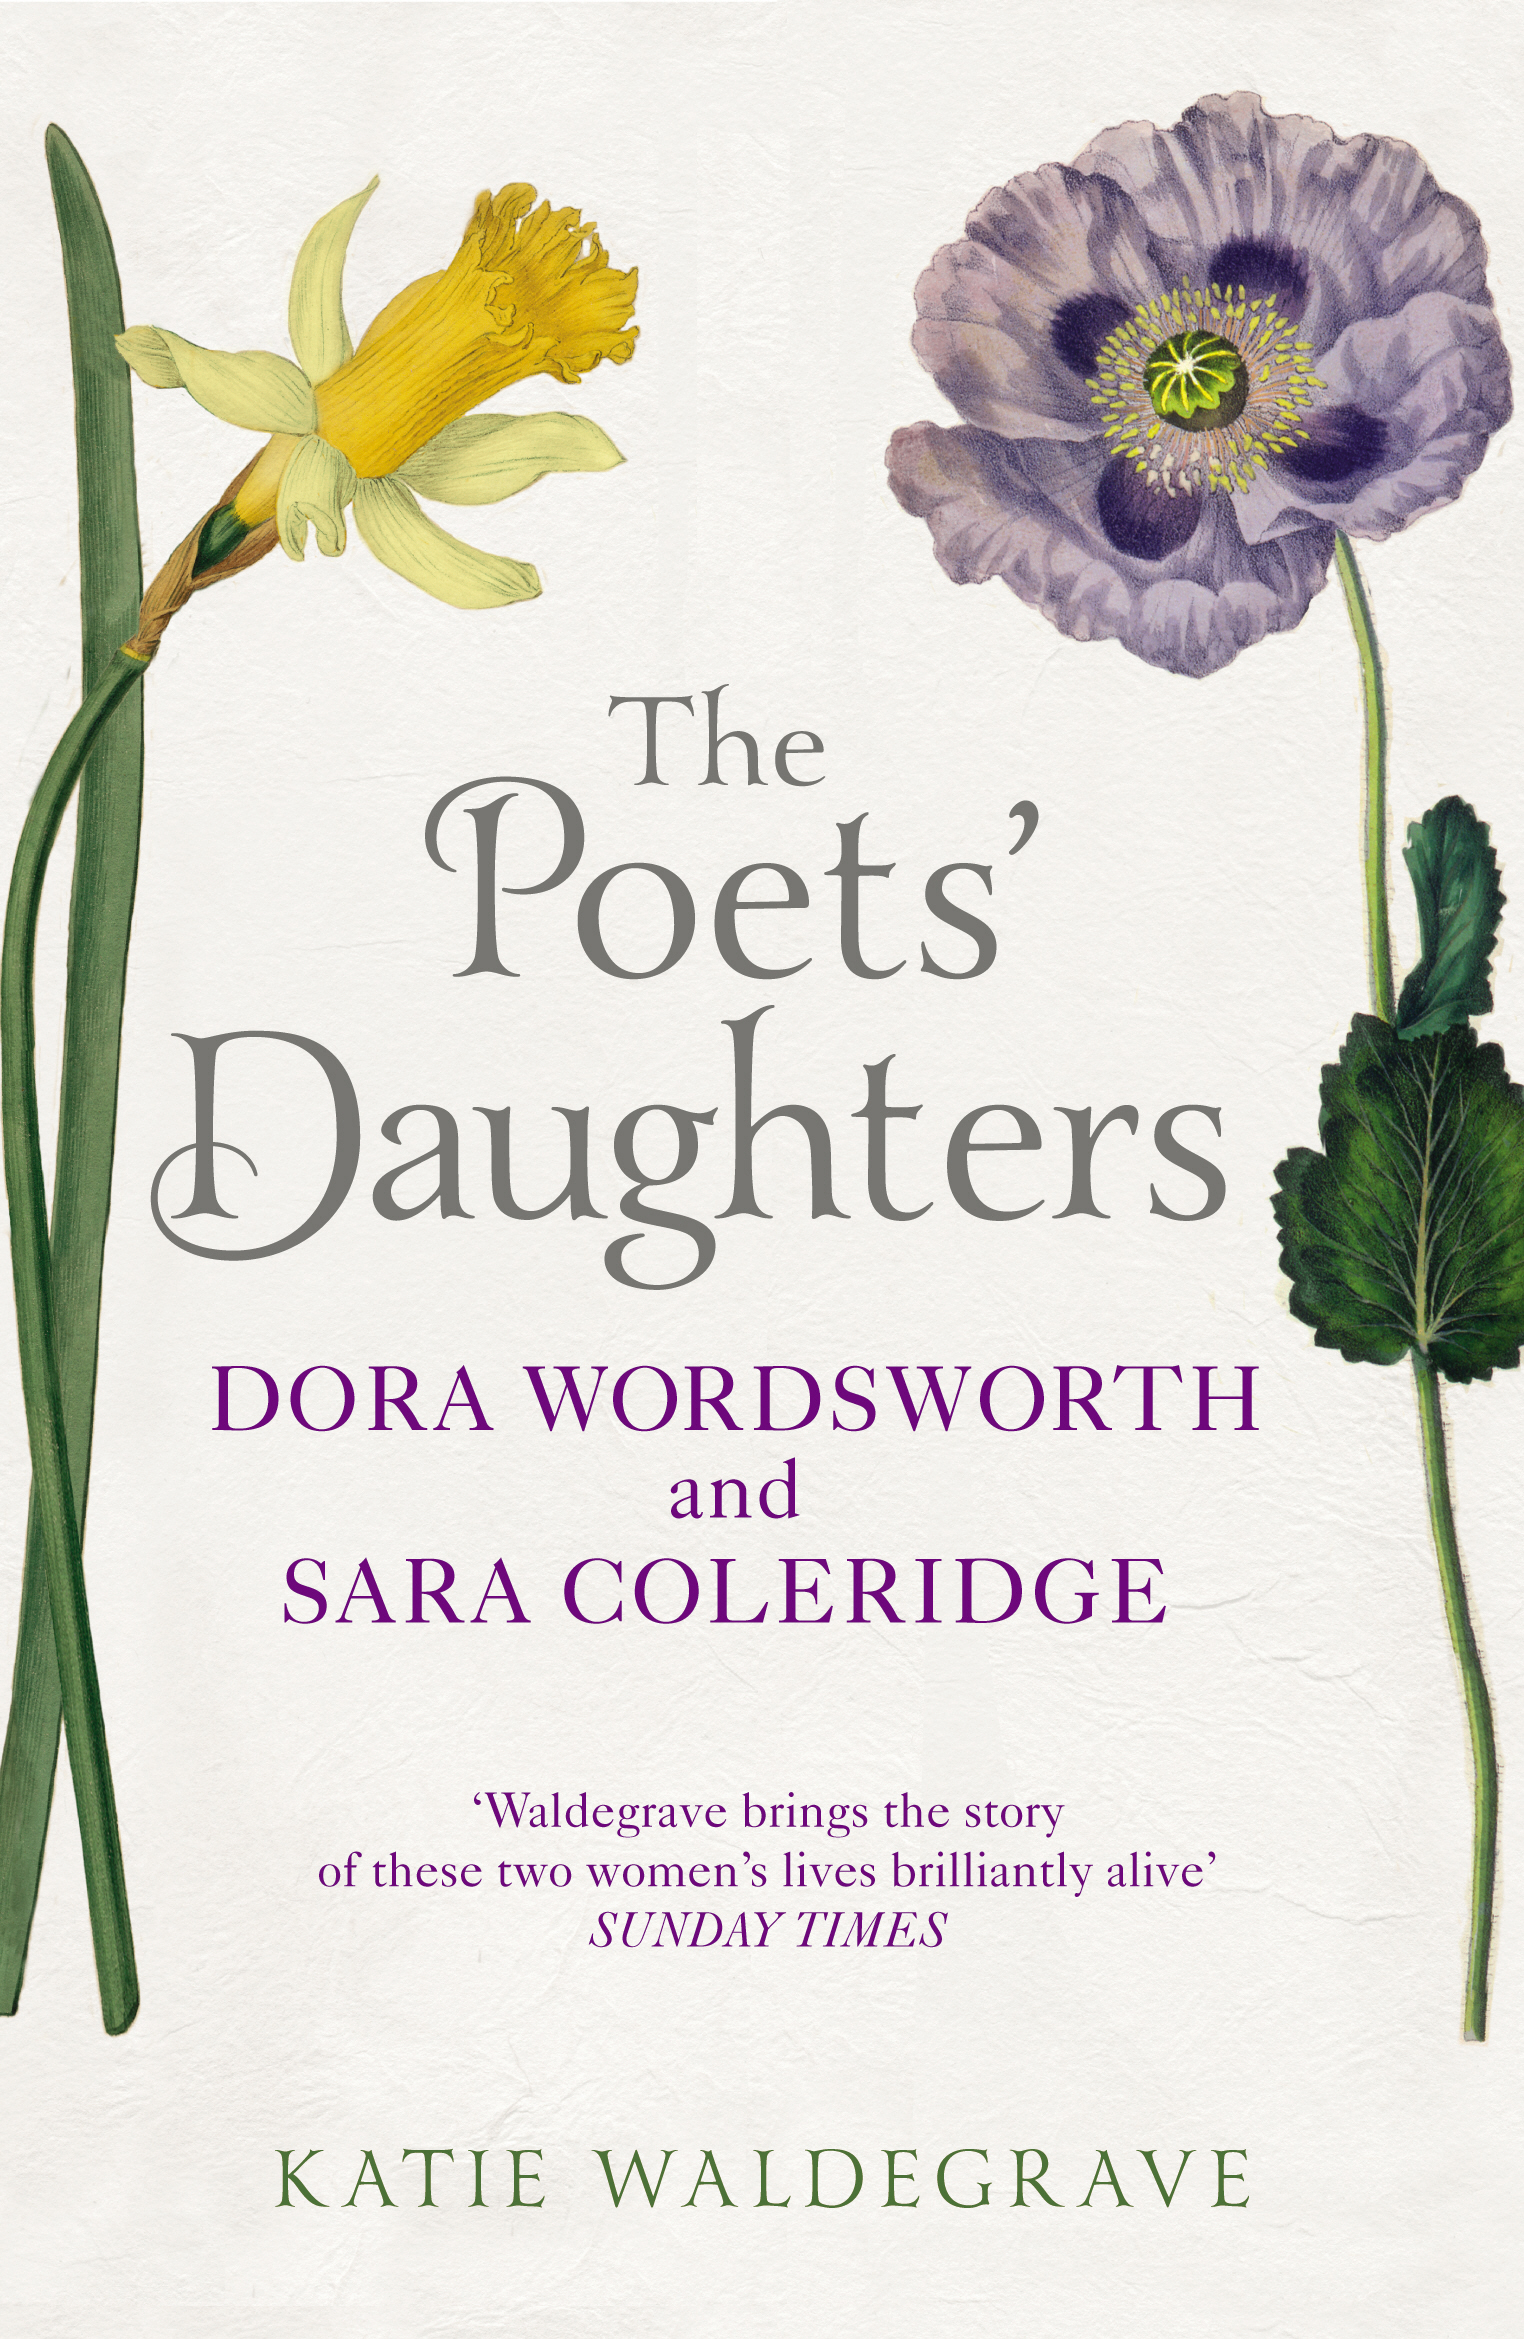 The Poets' Daughters Dora Wordsworth and Sara Coleridge